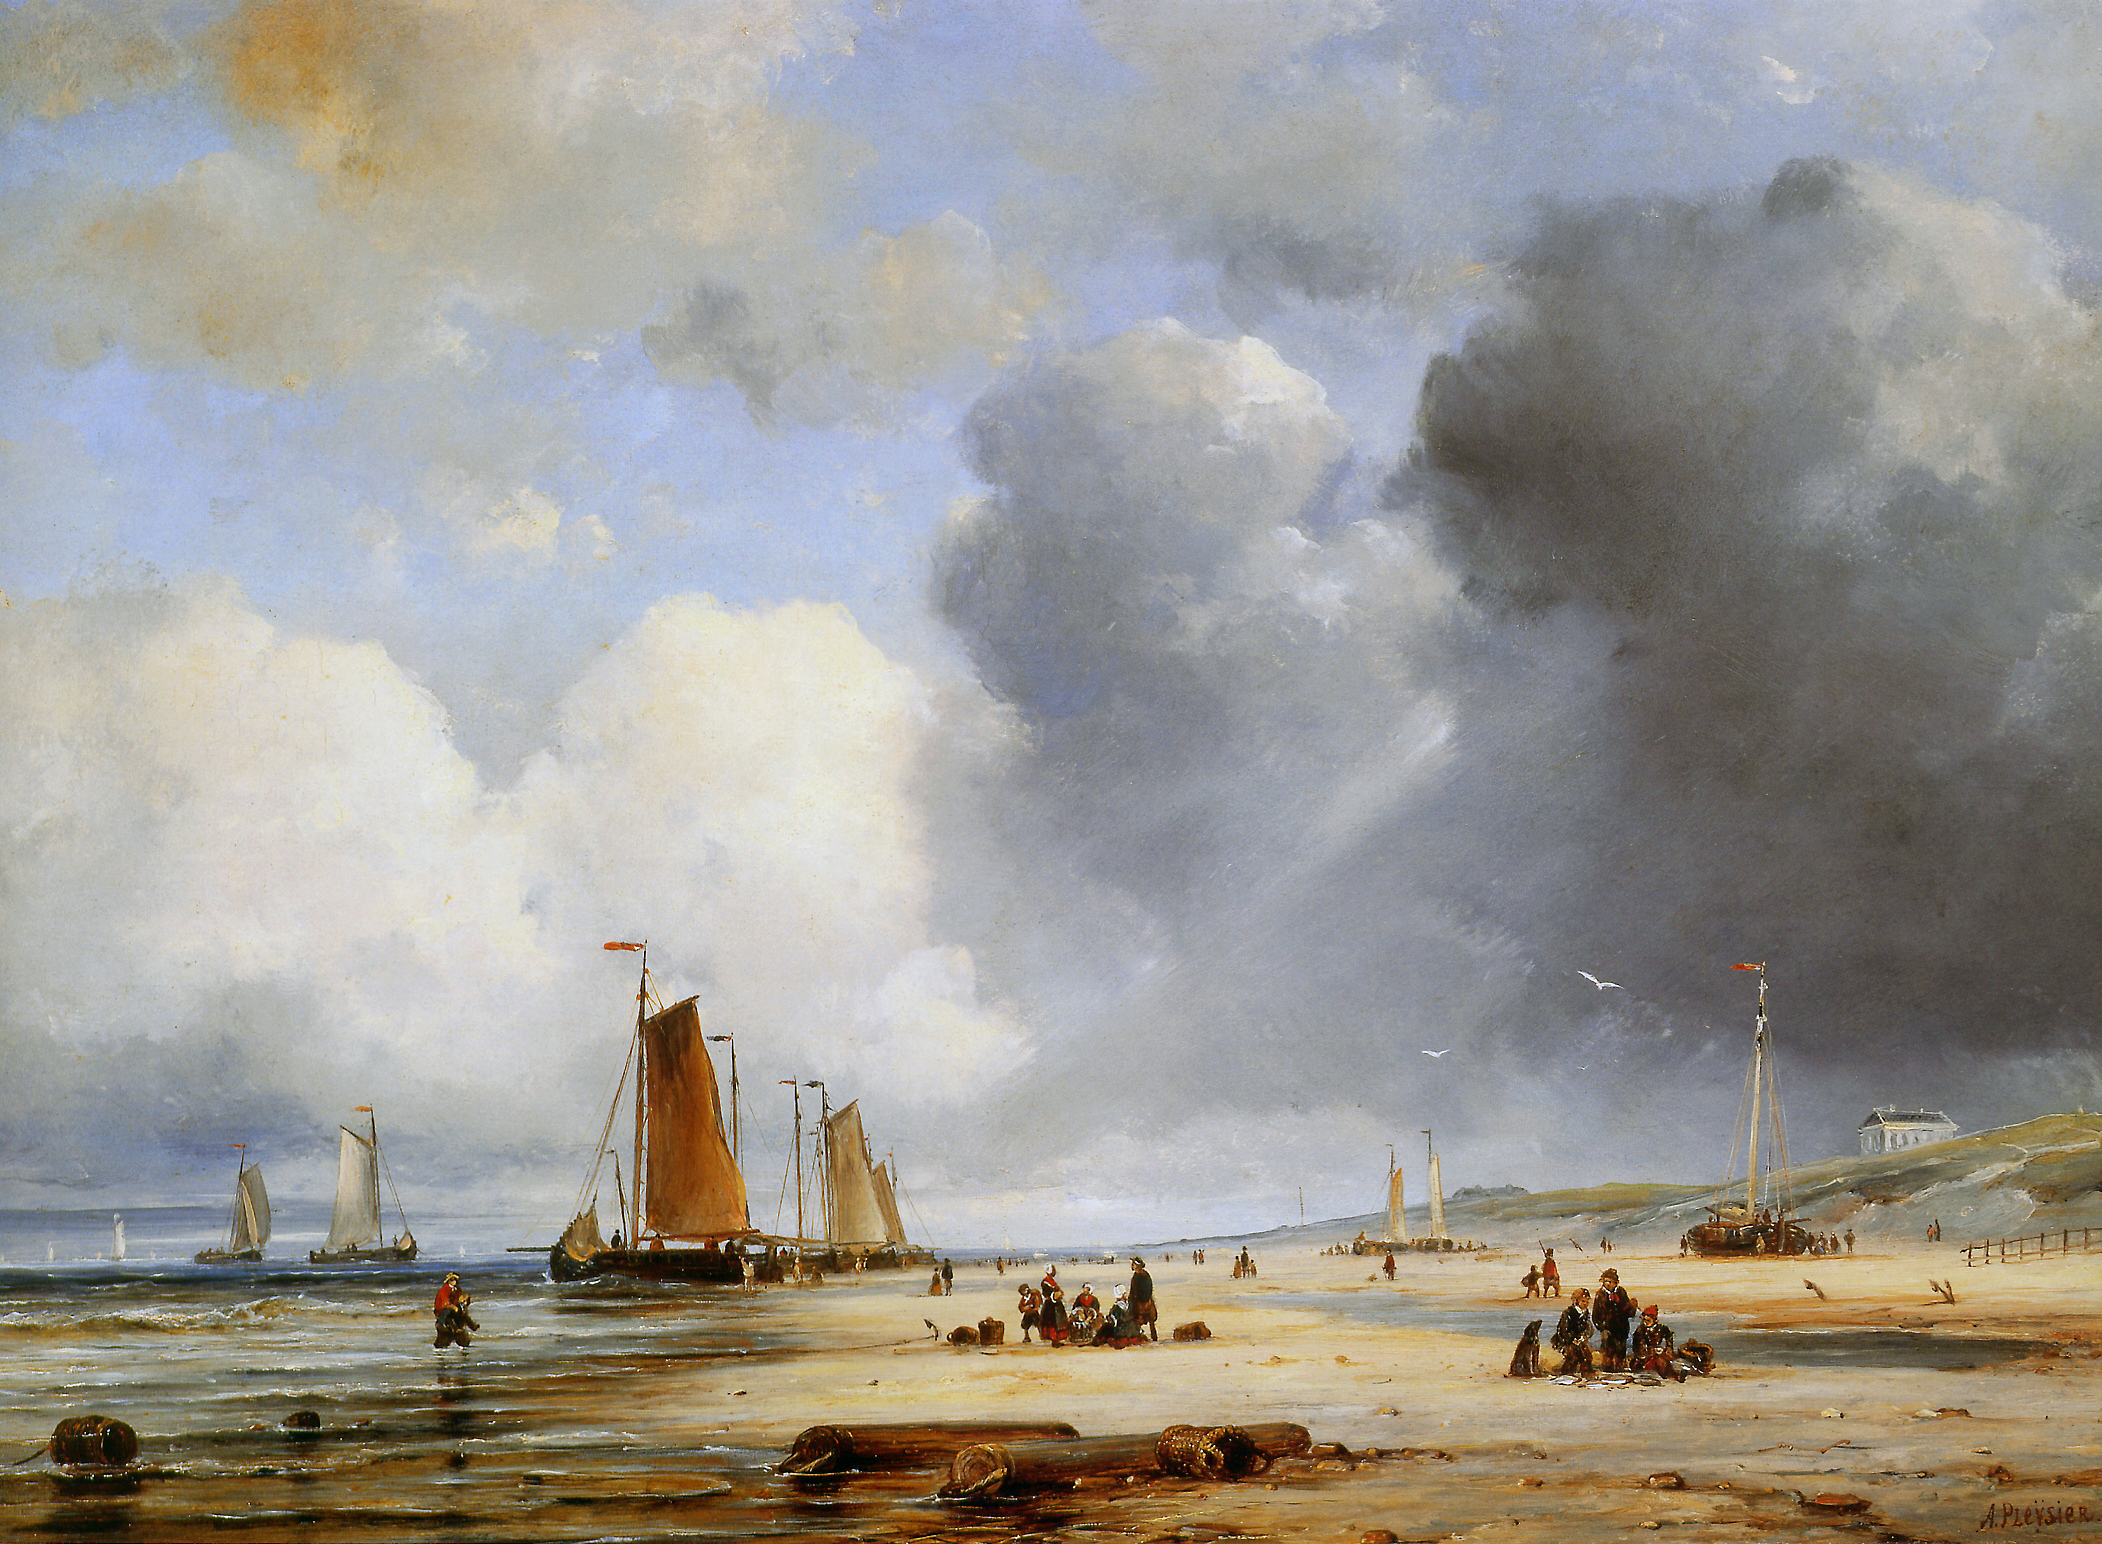 Ary Pleysier (1809-1879) - Beach View With Boats